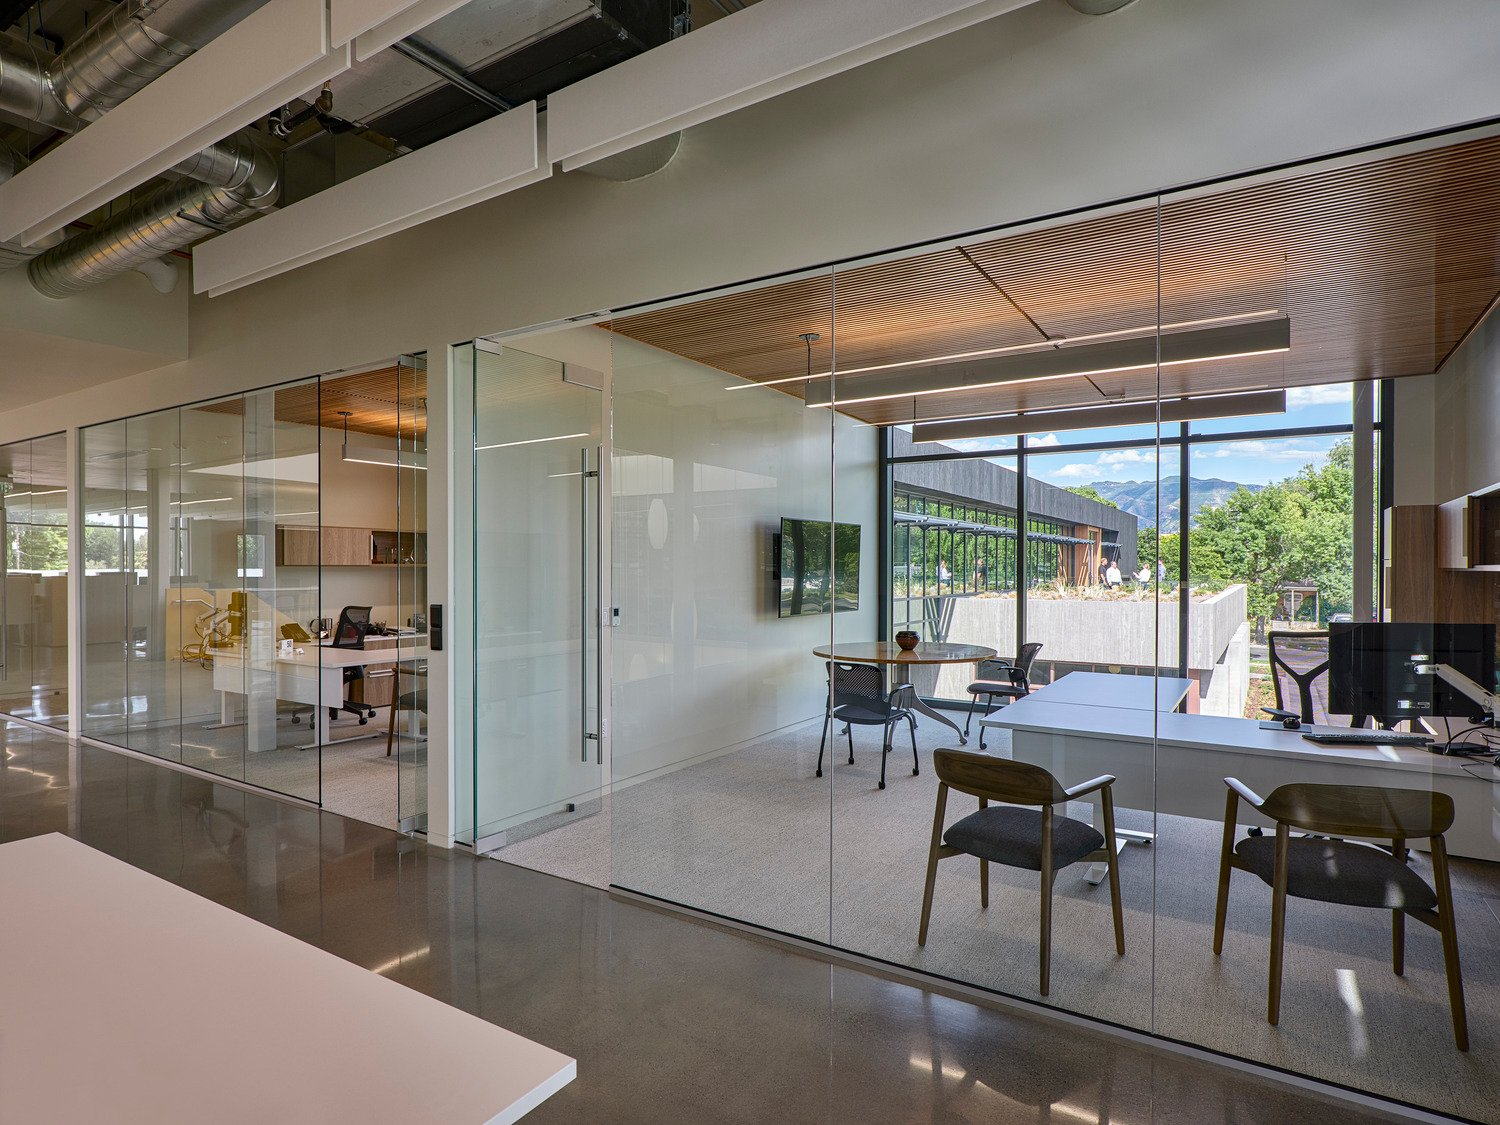 A glass and louver system on the existing 2nd floor allow natural light to flow into executive suites and to bring levity to the building's volume. Tim Griffith